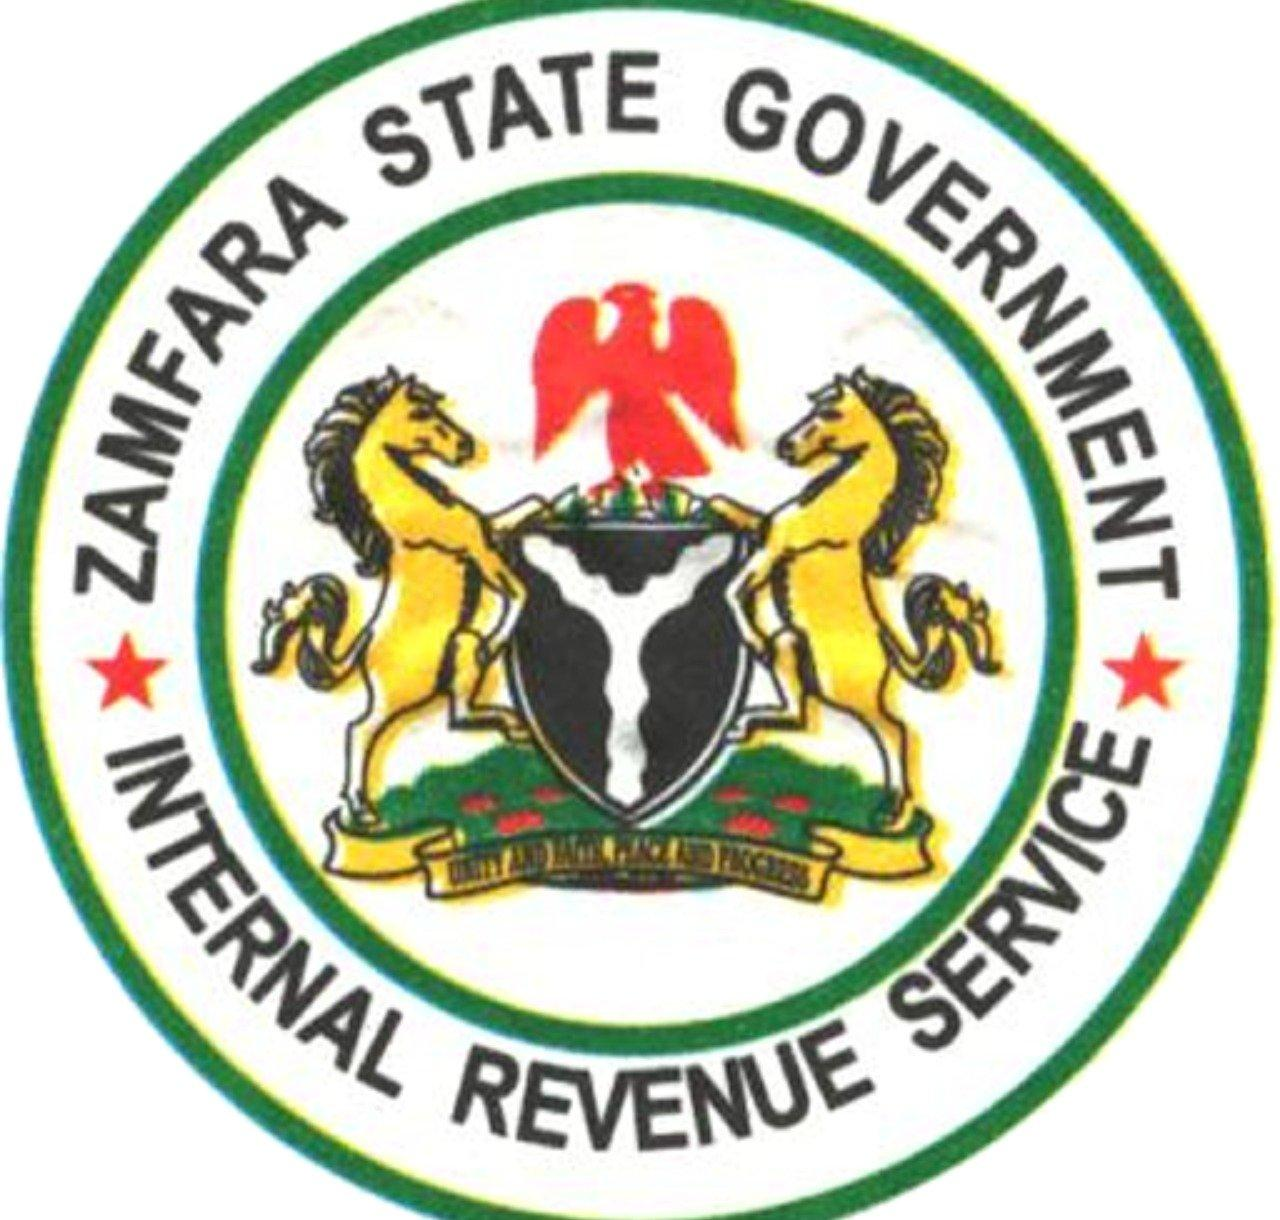 Only 21 percent of eligible taxpayers remit taxes – ZIRS boss